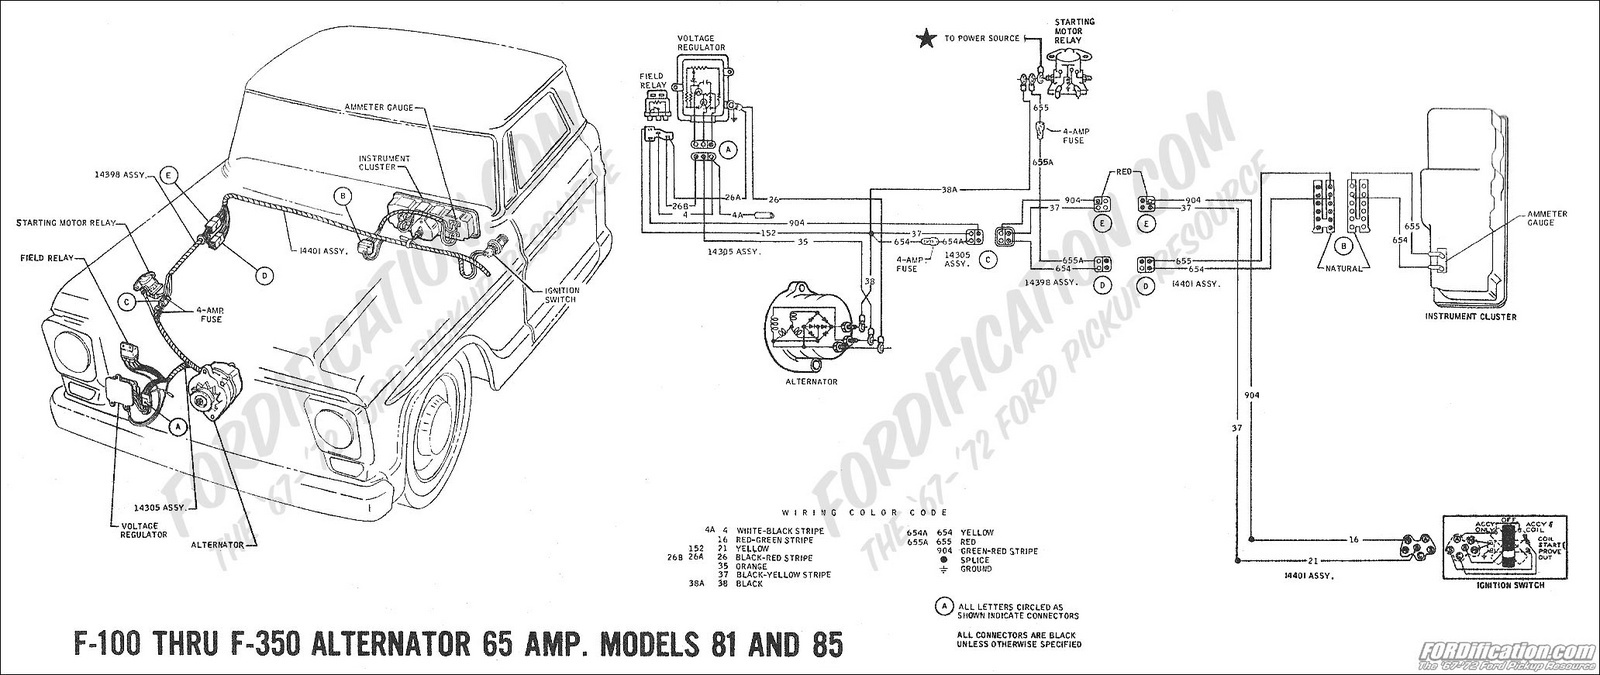 78 Ford F100 Wiring Diagram Manual E Books 1955 Datawiring For A 73 Data